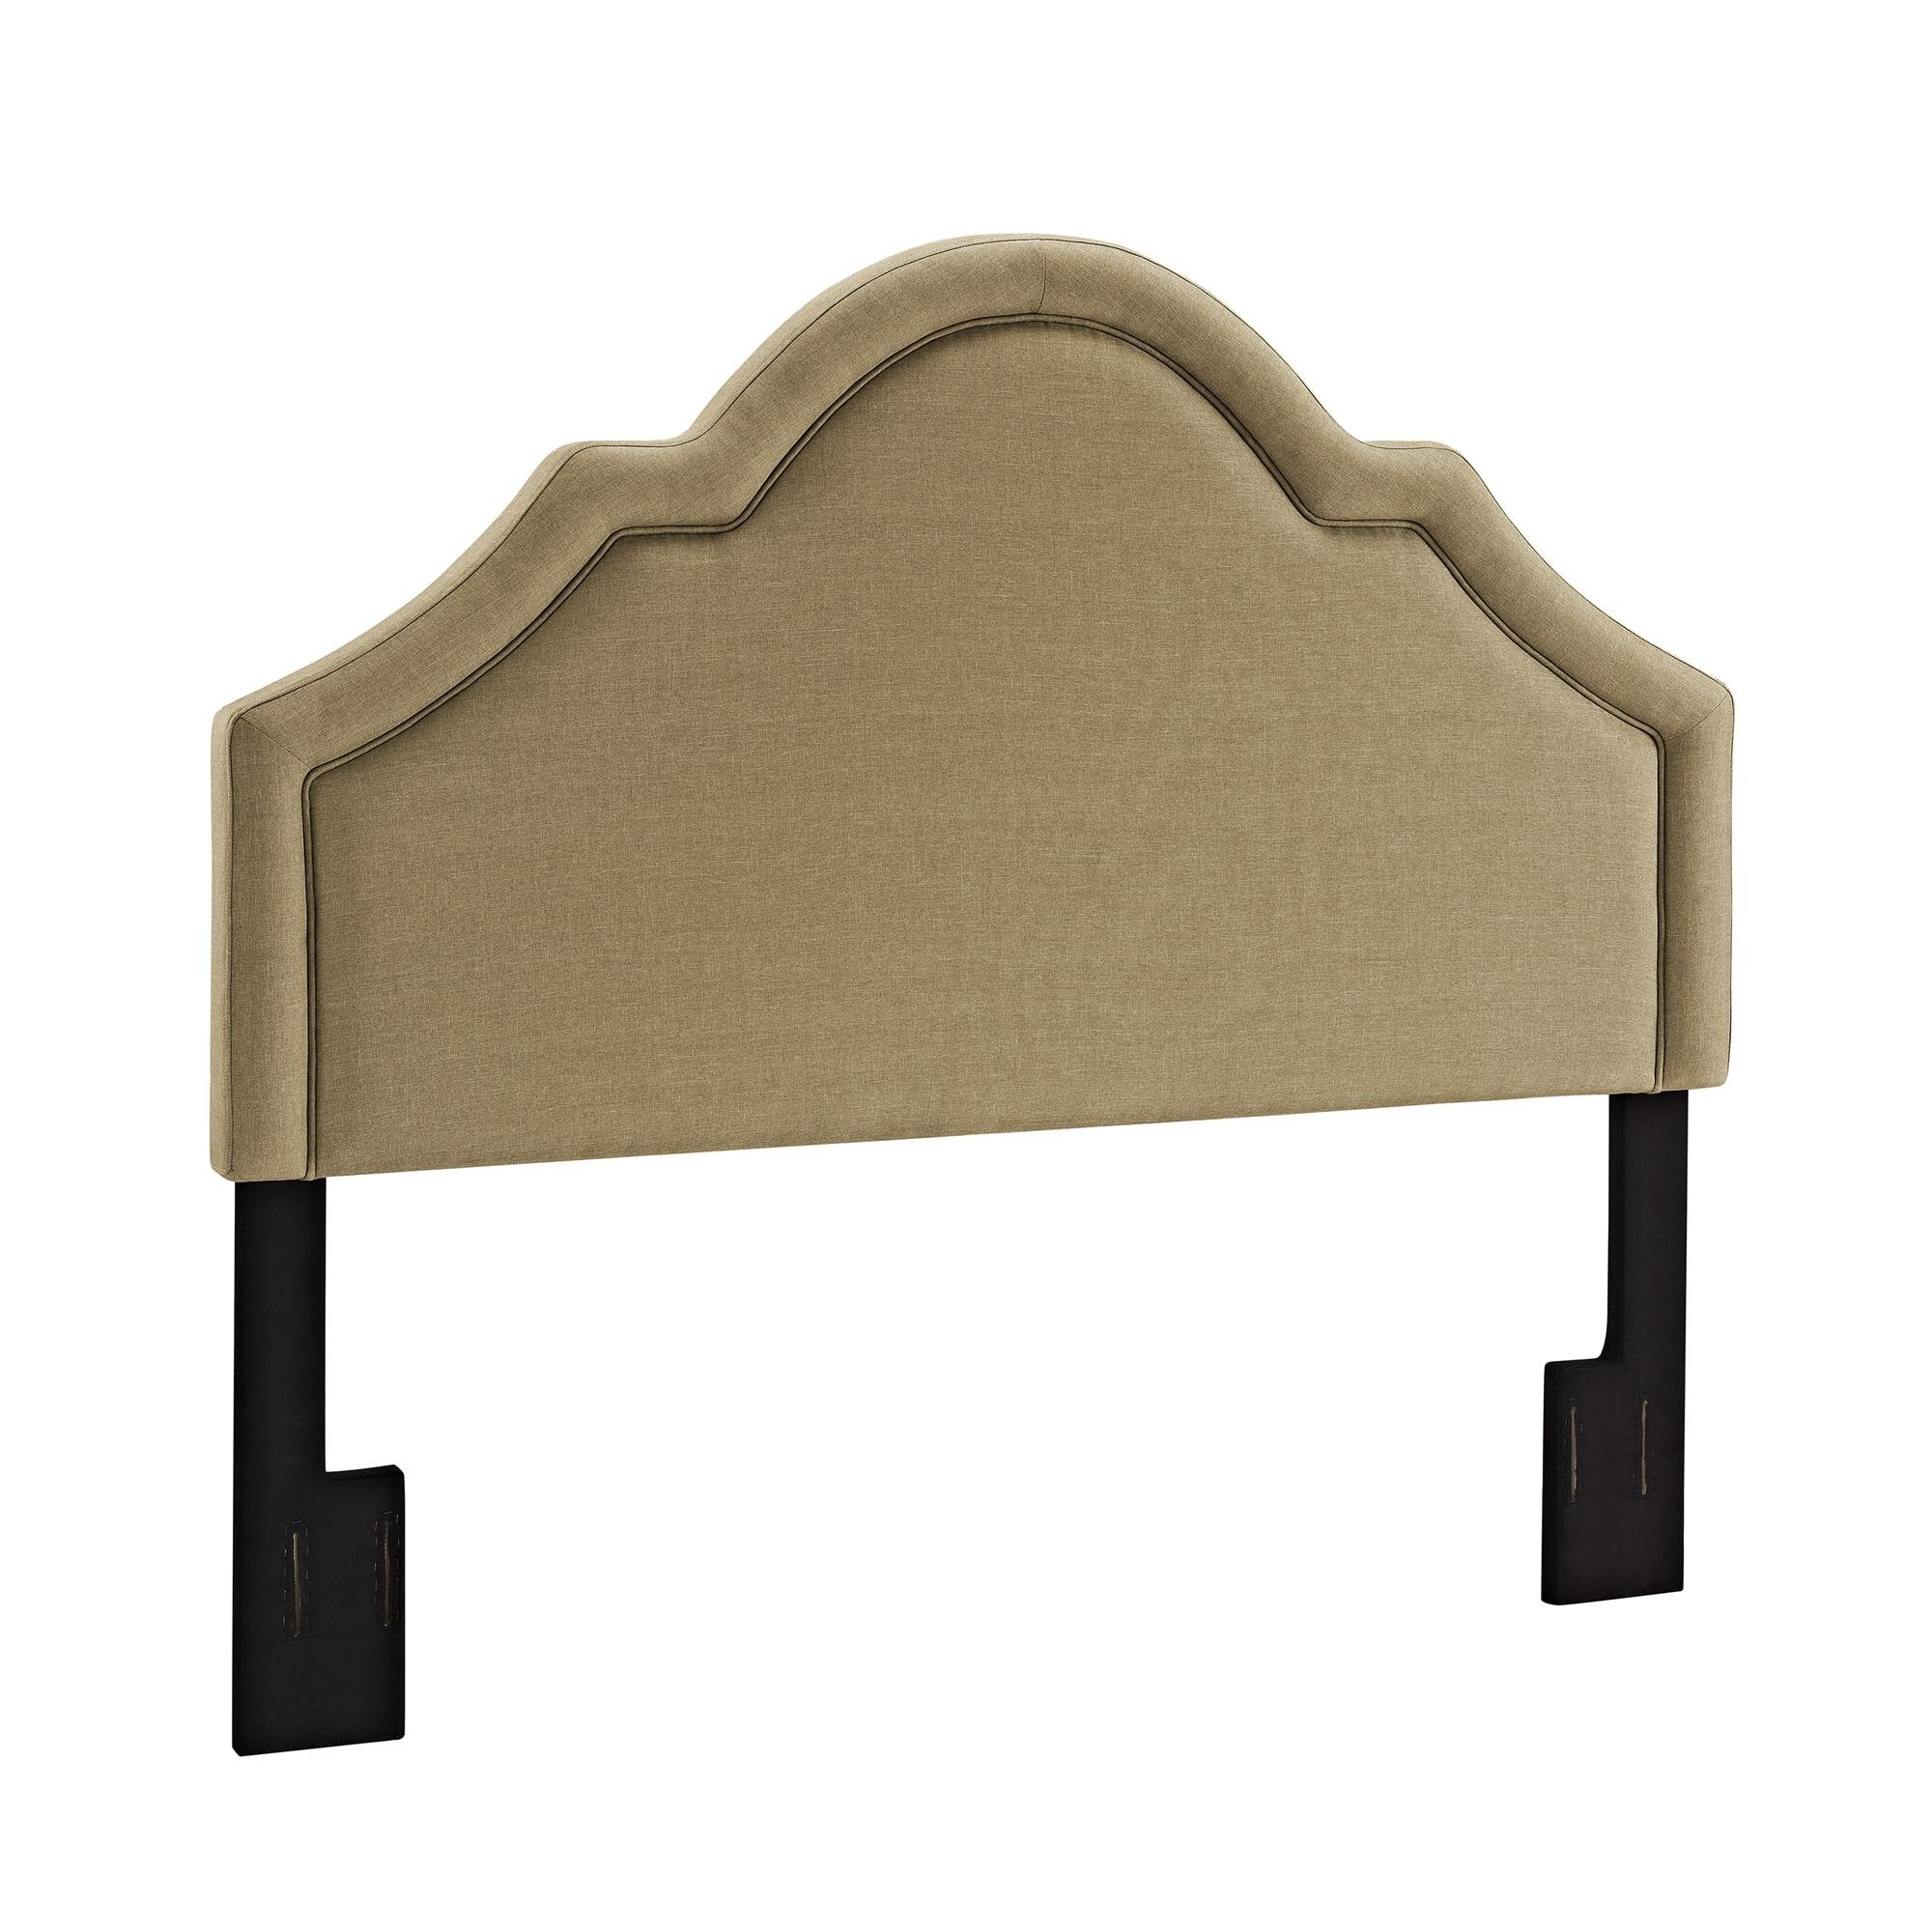 Alcott Hill Baton Rouge Queen Upholstered Panel Headboard